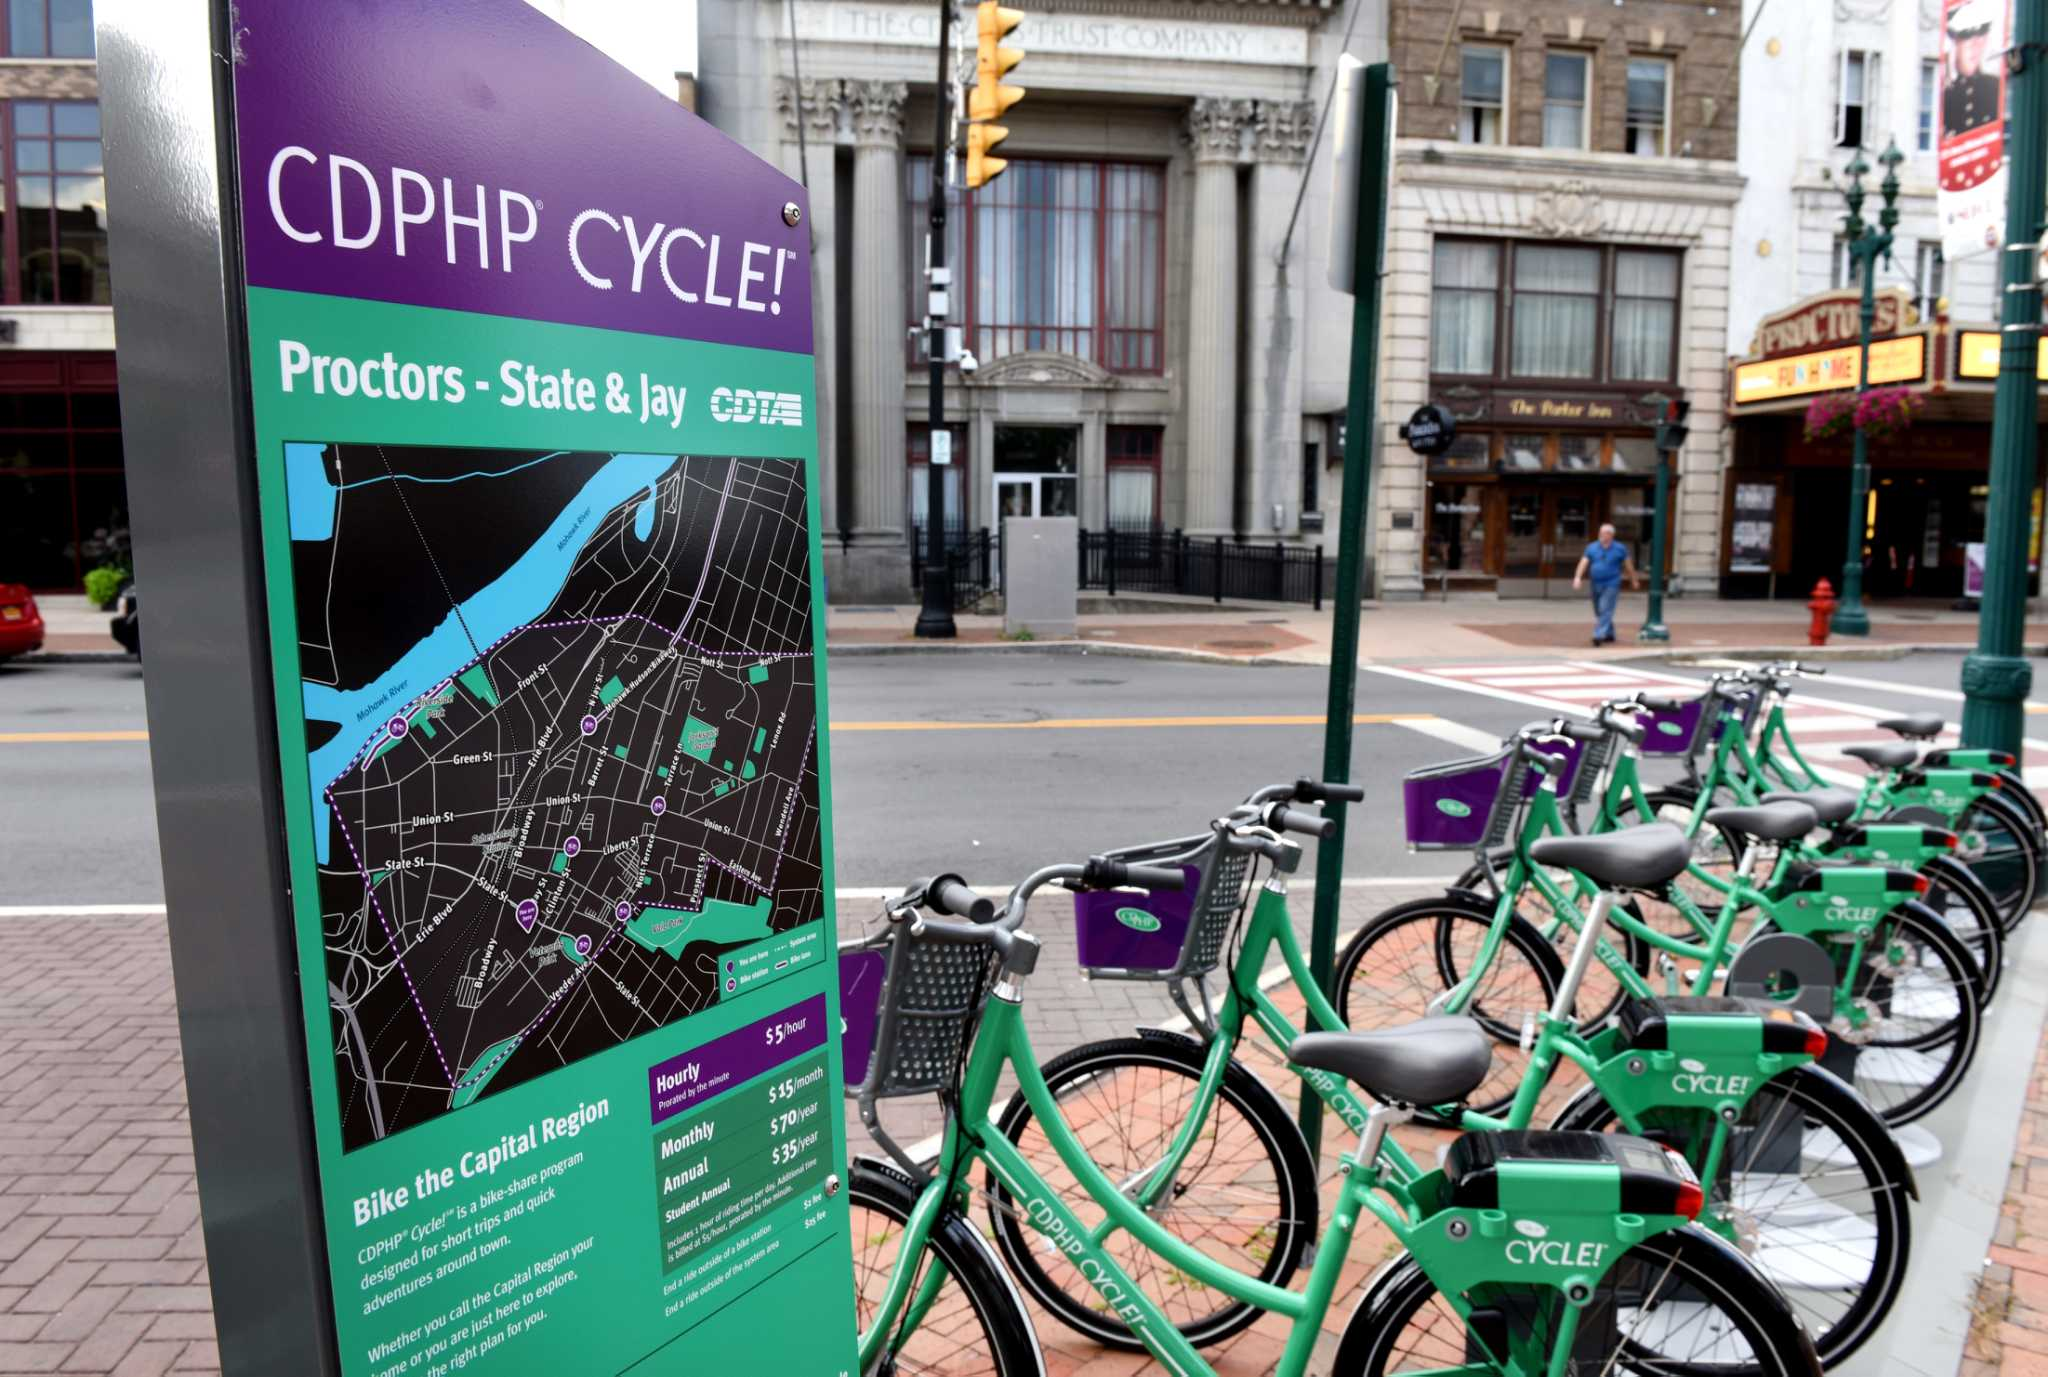 CDPHP Cycle! returns with 500 bicycles to share